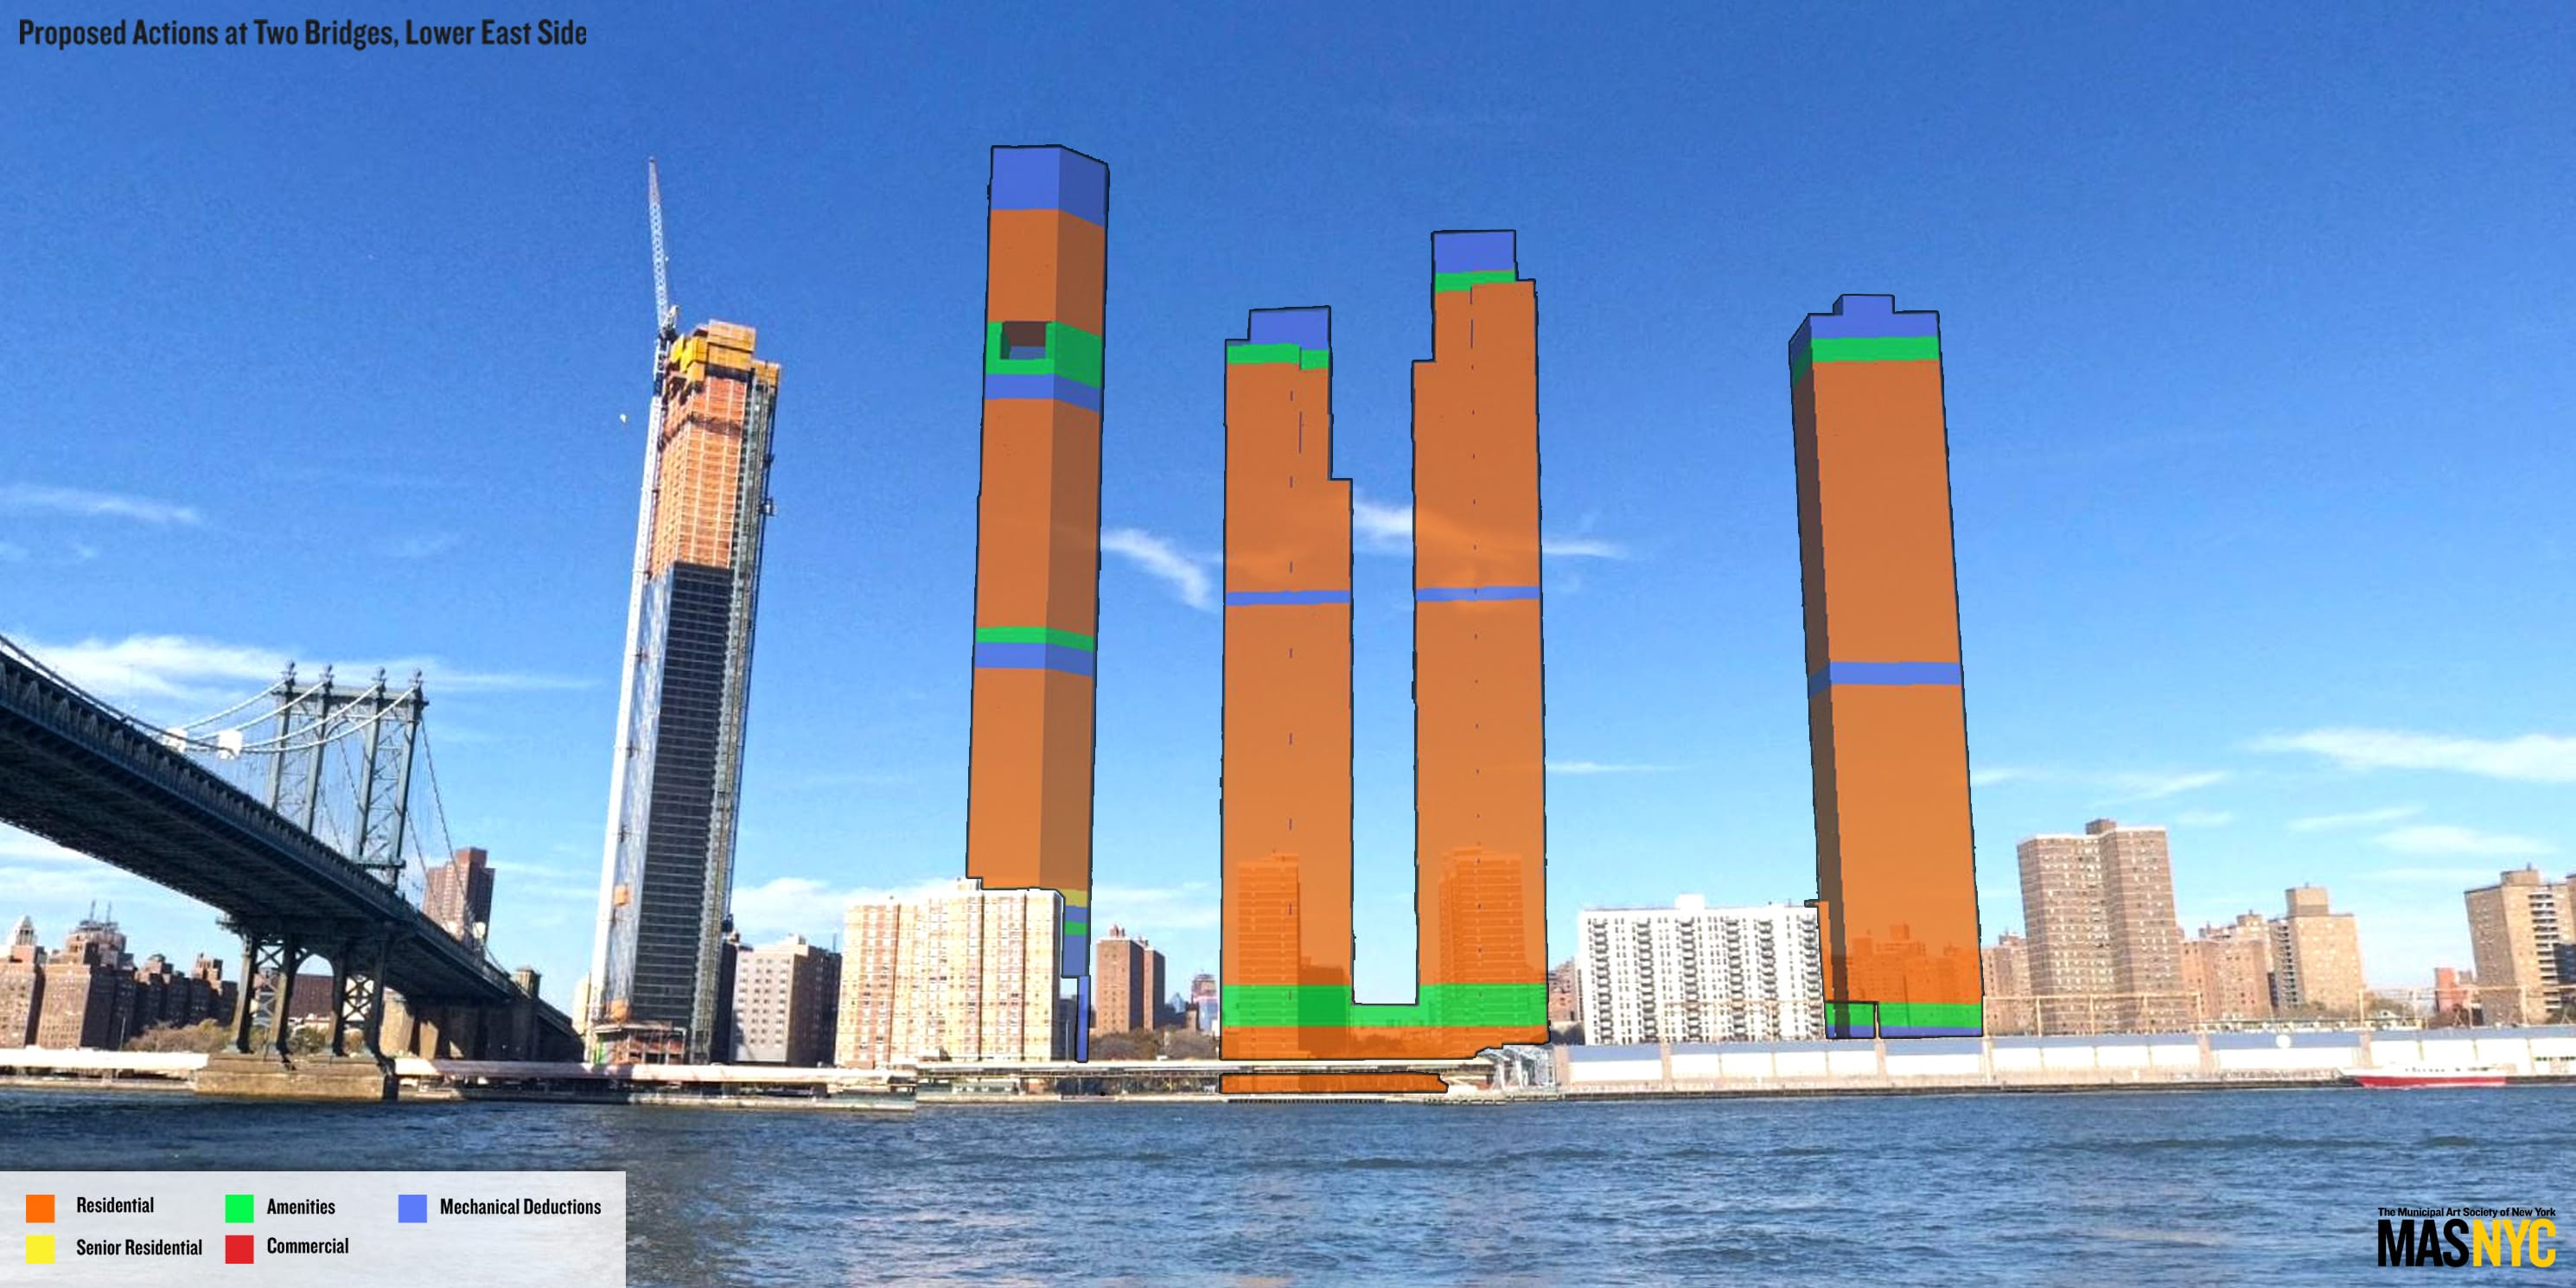 rendering of Manhattan skyline with proposed Two Bridges towers